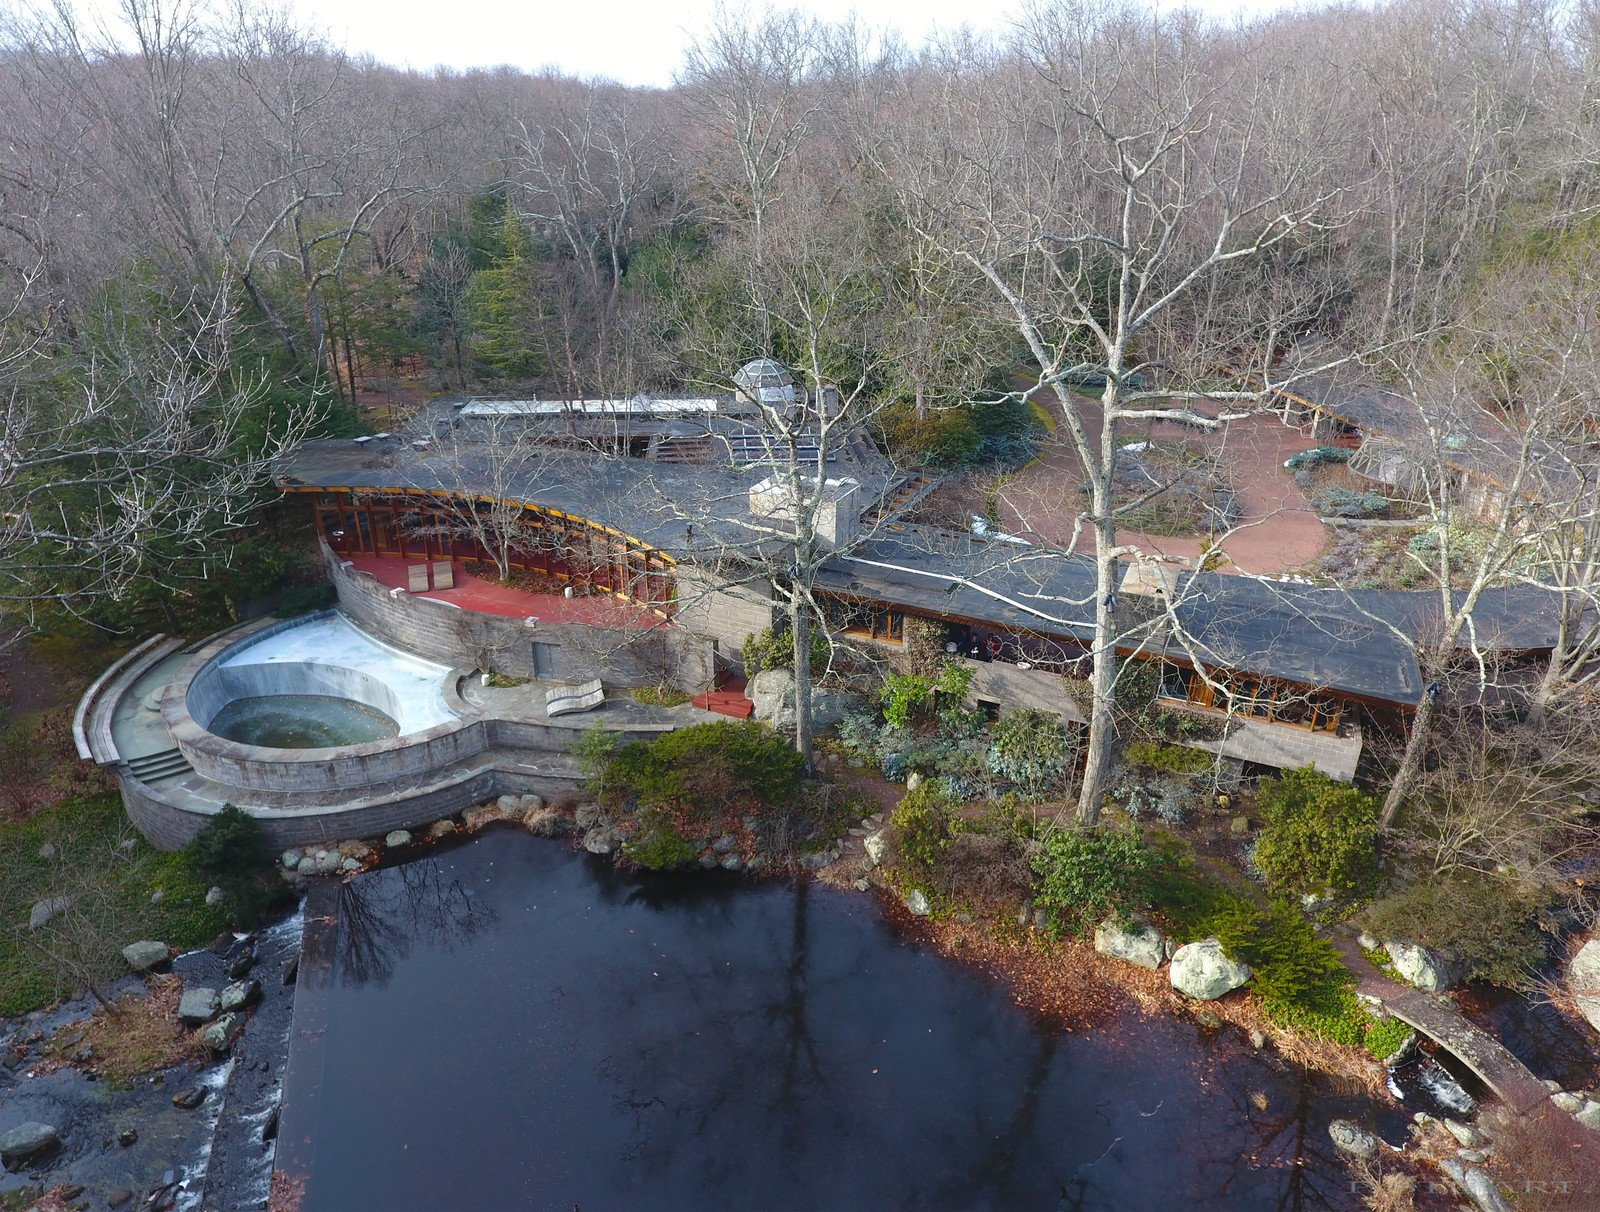 An overhead drone view shows the 15-acre property that also hosts a heated pool, river, tennis court, barn/stable, sculpture path, and rooftop observatory. The original landscaping was designed by Frank Okamura and Charles Middeleer.   Tirranna